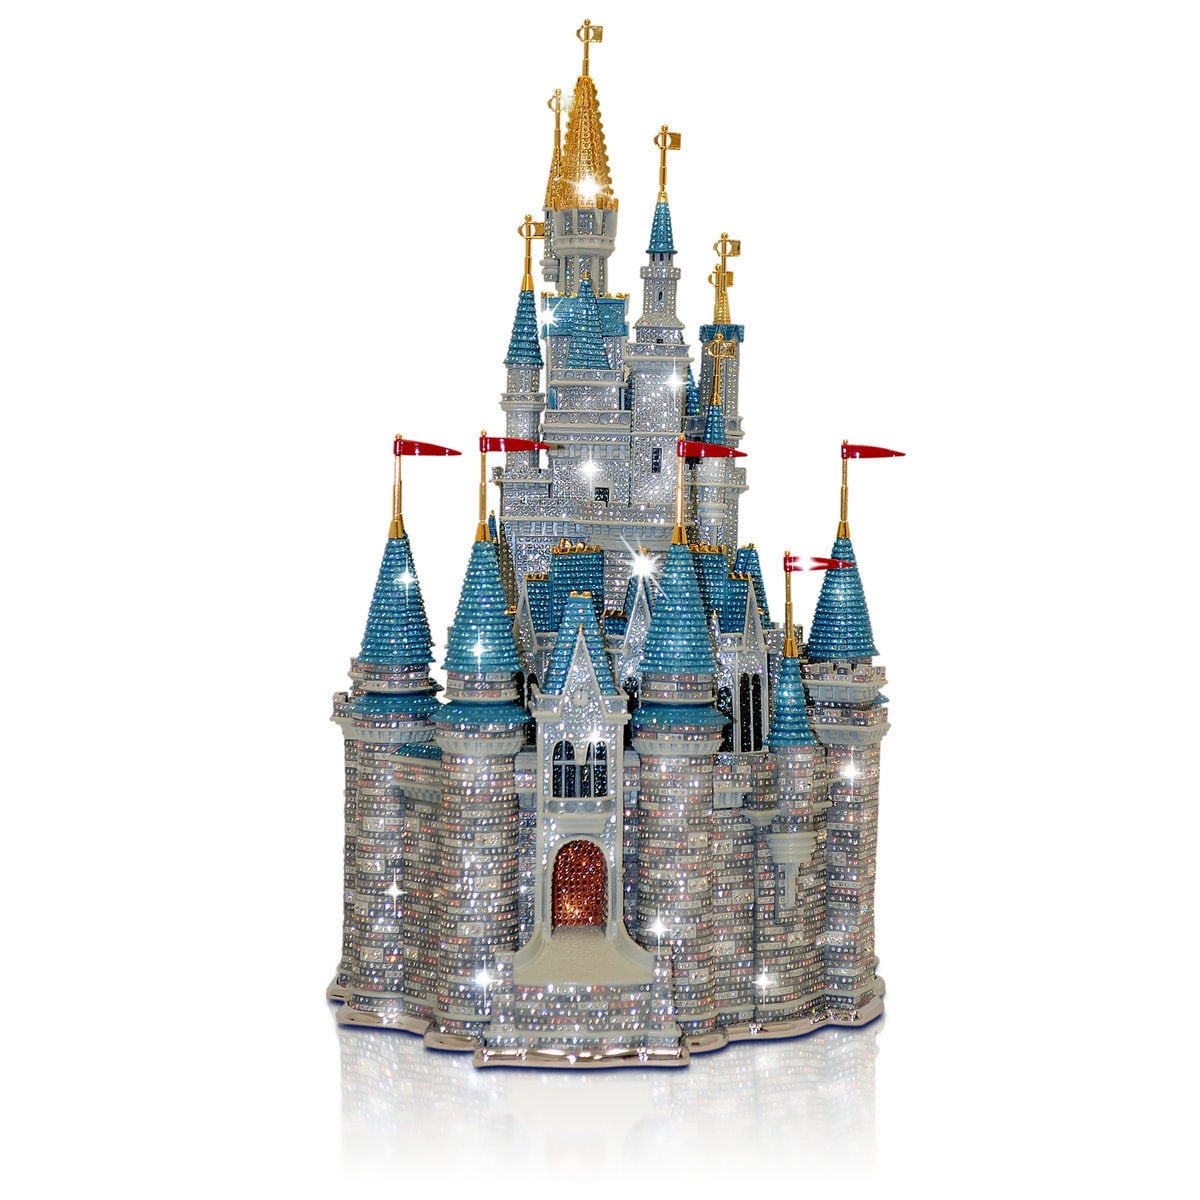 0df994514 Product Image of Walt Disney World Cinderella Castle Sculpture by Arribas  Brothers - Limited Edition #